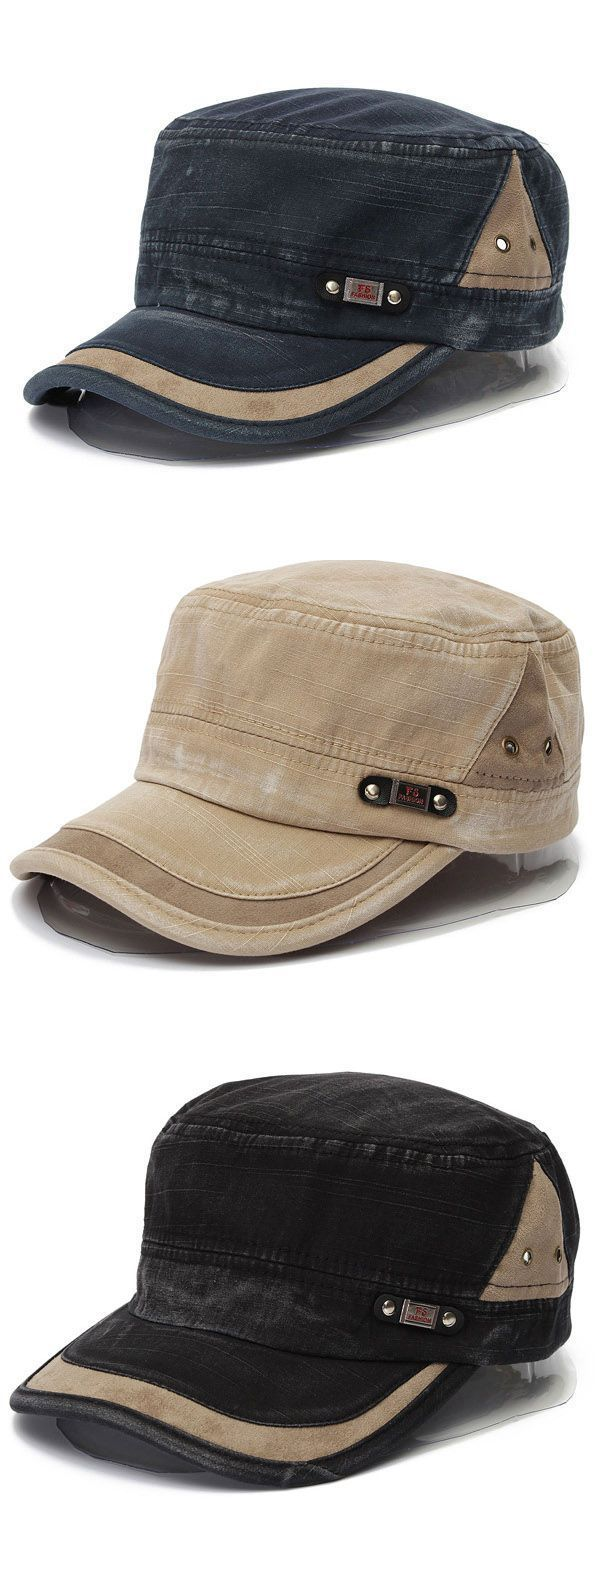 US$8.99 + Free shipping. Cotton blend cap, military cap, washed baseball cap, vintage army plain flat cap, caps mens. Color: black, blue, green, light brown, beige.Fosterginger.Pinterest.ComMore Pins Like This One At FOSTERGINGER @ PINTEREST No Pin Limitsでこのようなピンがいっぱいになるピンの限界